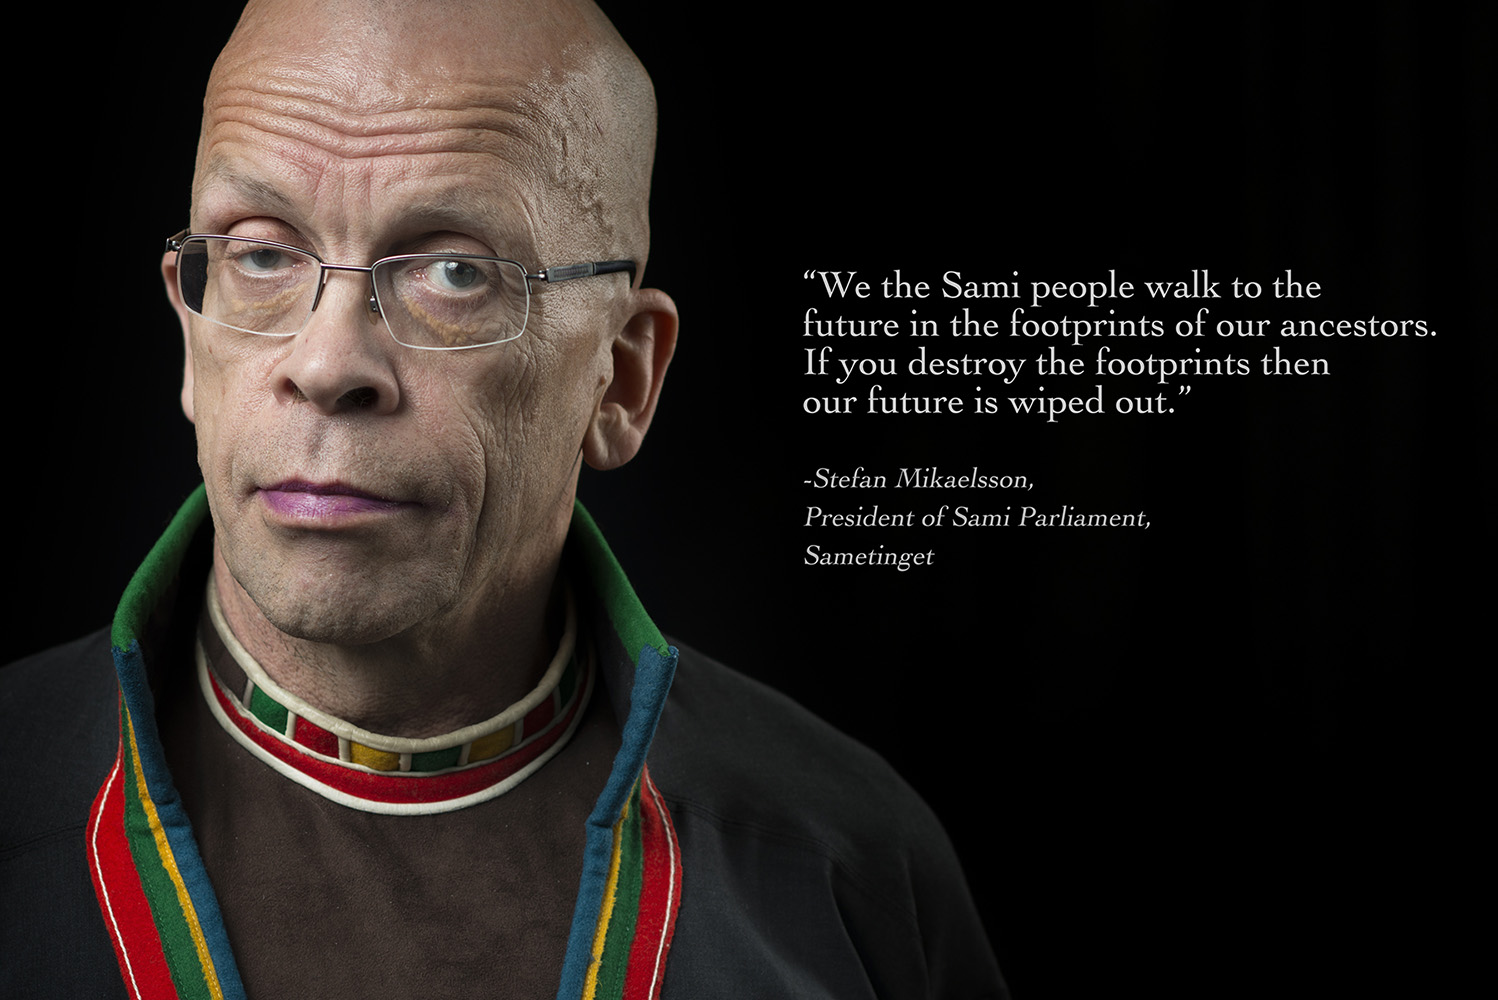 "Stefan Mikaelsson, President of Sami Parliament, Sametinget""We the Sami people walk to thefuture in the footprints of our ancestors. If you destroy the footprints then our future is wiped out."""